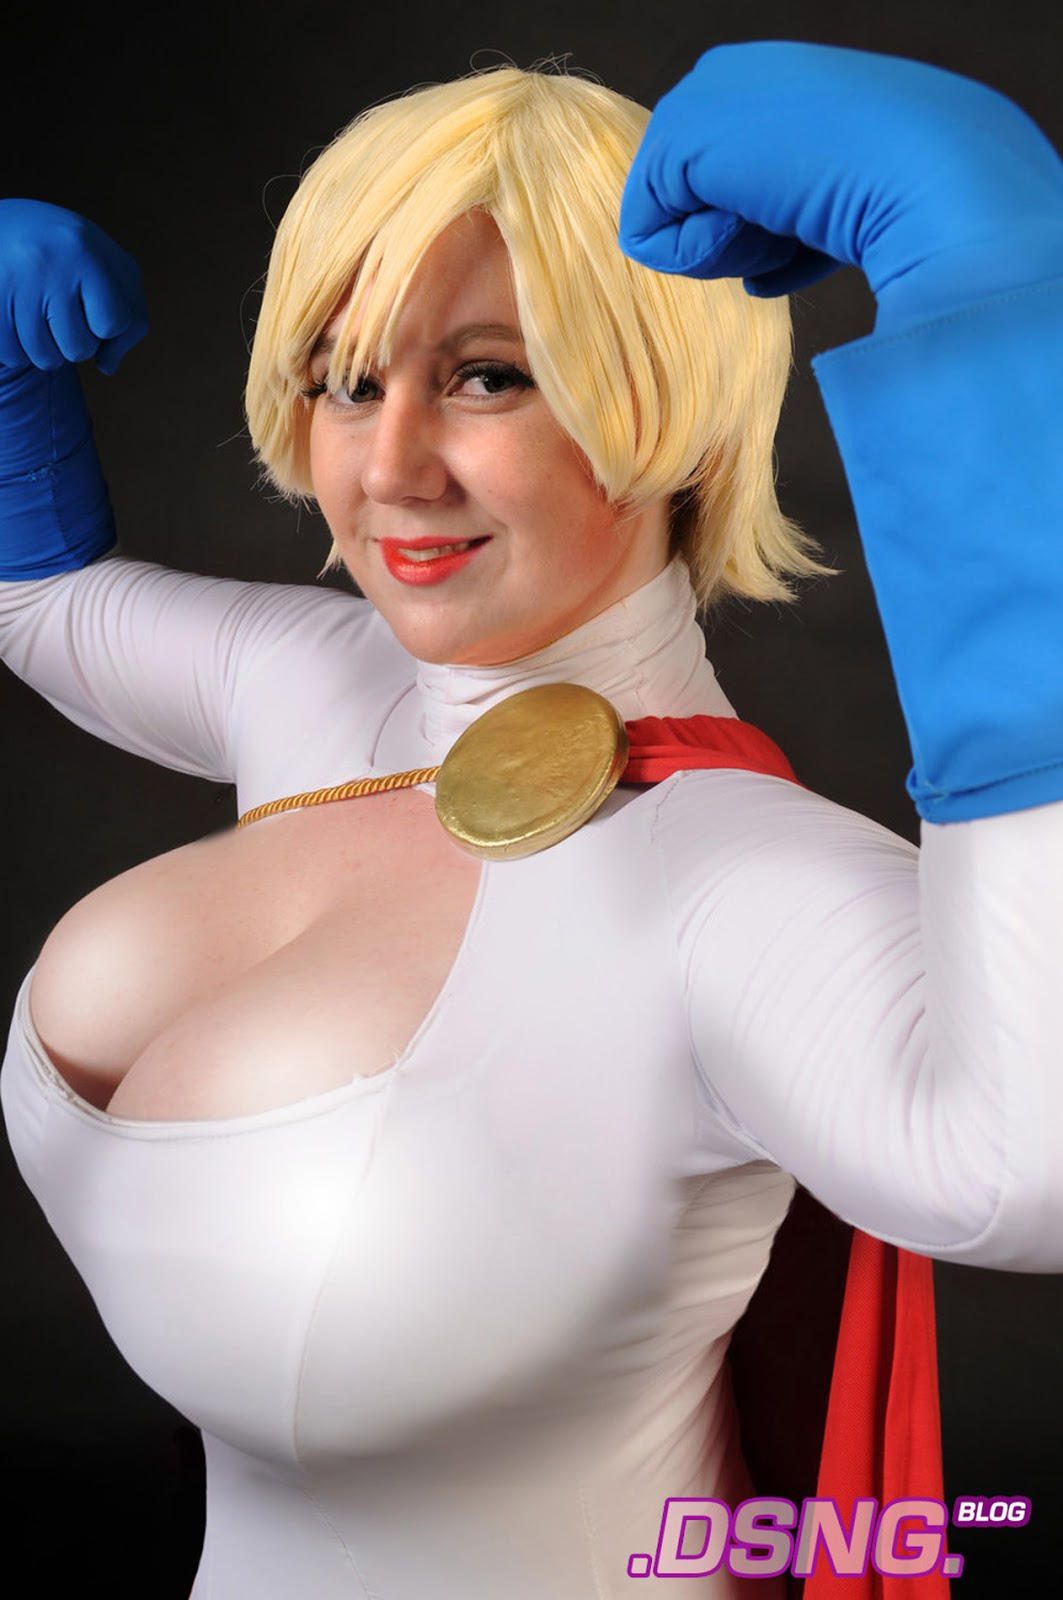 Hot blonde cosplay